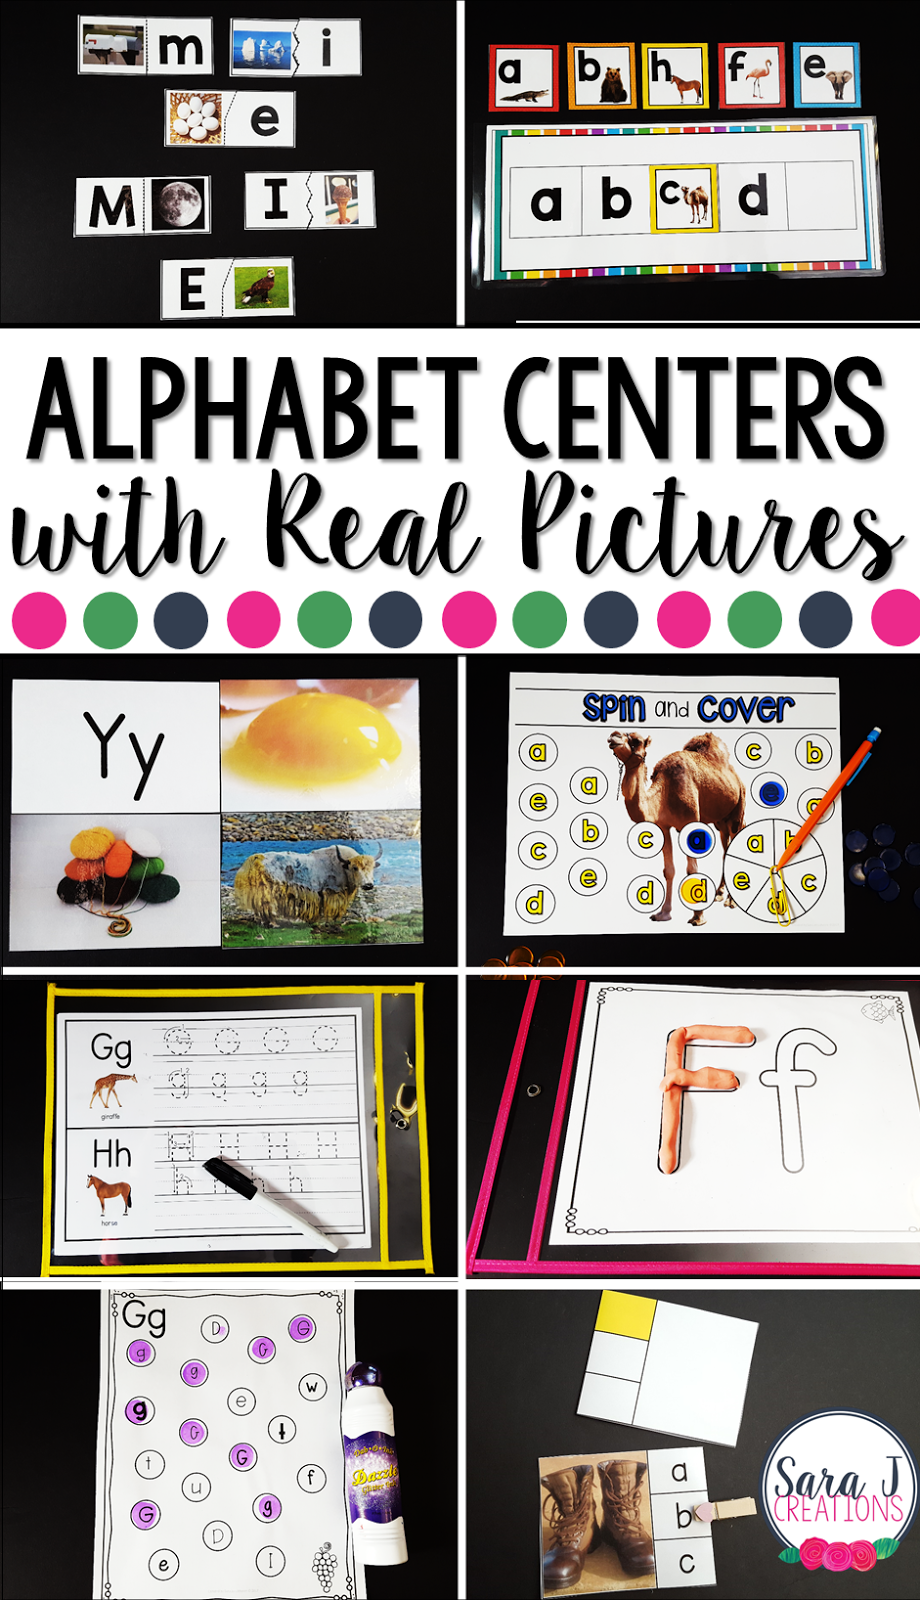 Alphabet centers with real pictures make the perfect printable practice for preschool and kindergarten. #alphabet #sarajcreations #abc #printables #centers